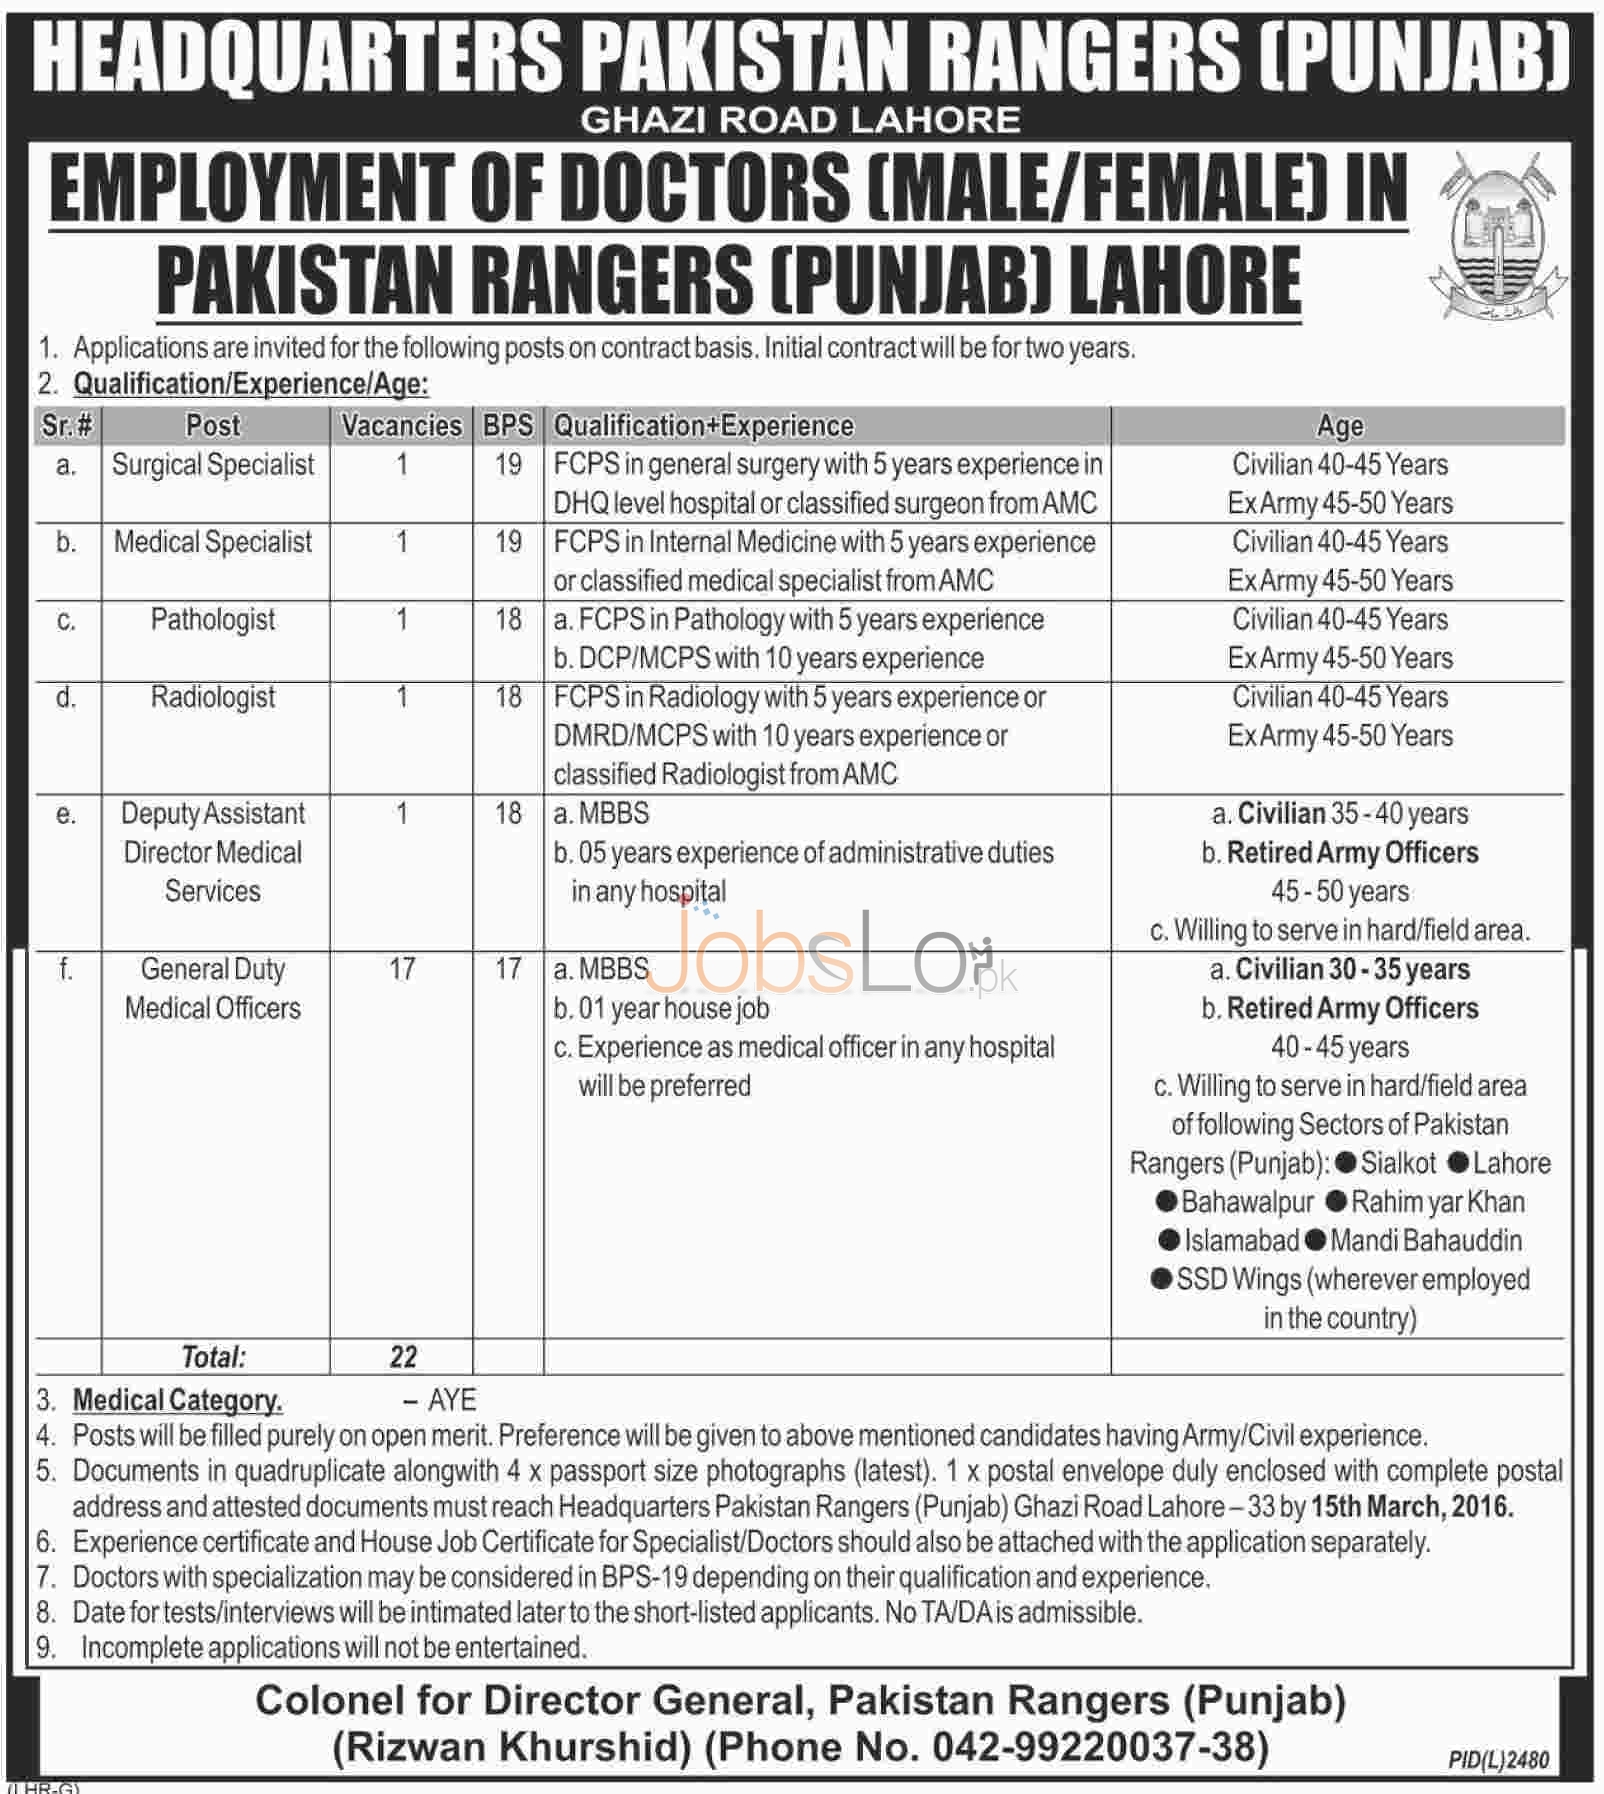 Situations Vacant in Pakistan Rangers Punjab 12 Feb 2016 Lahore for Specialist Doctors Male and Females